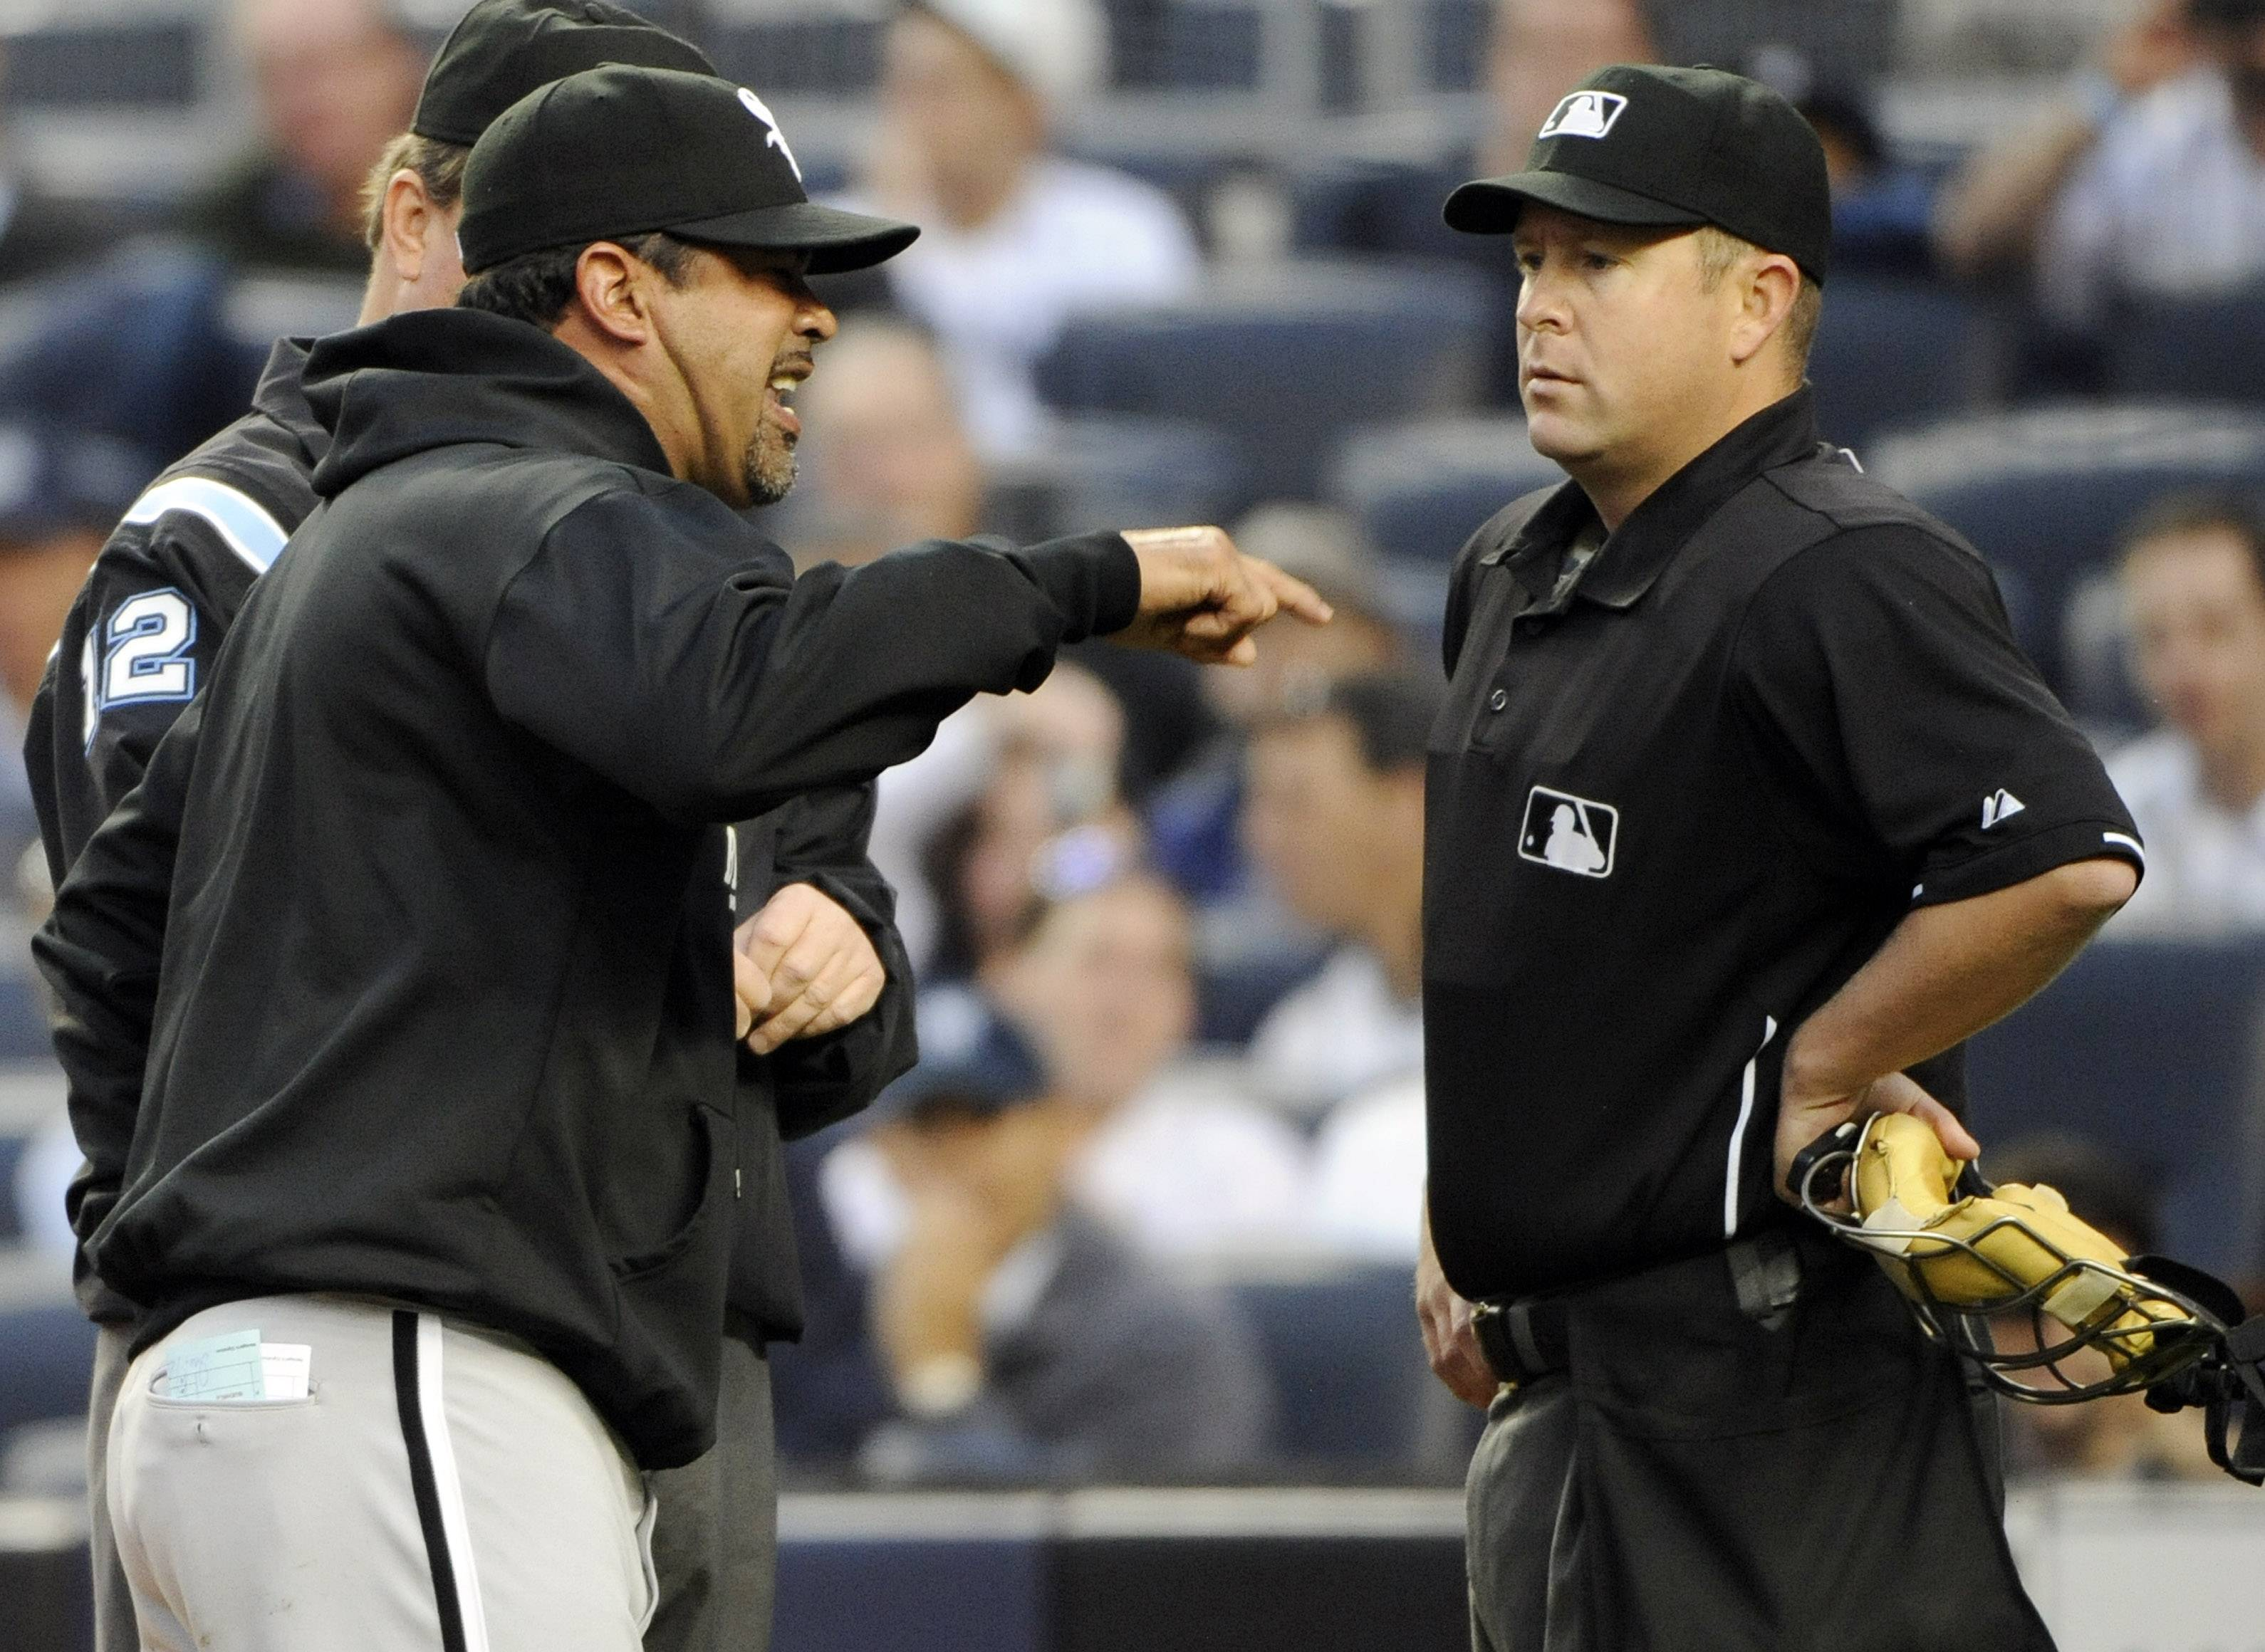 Guillen tossed, Colon shuts down White Sox